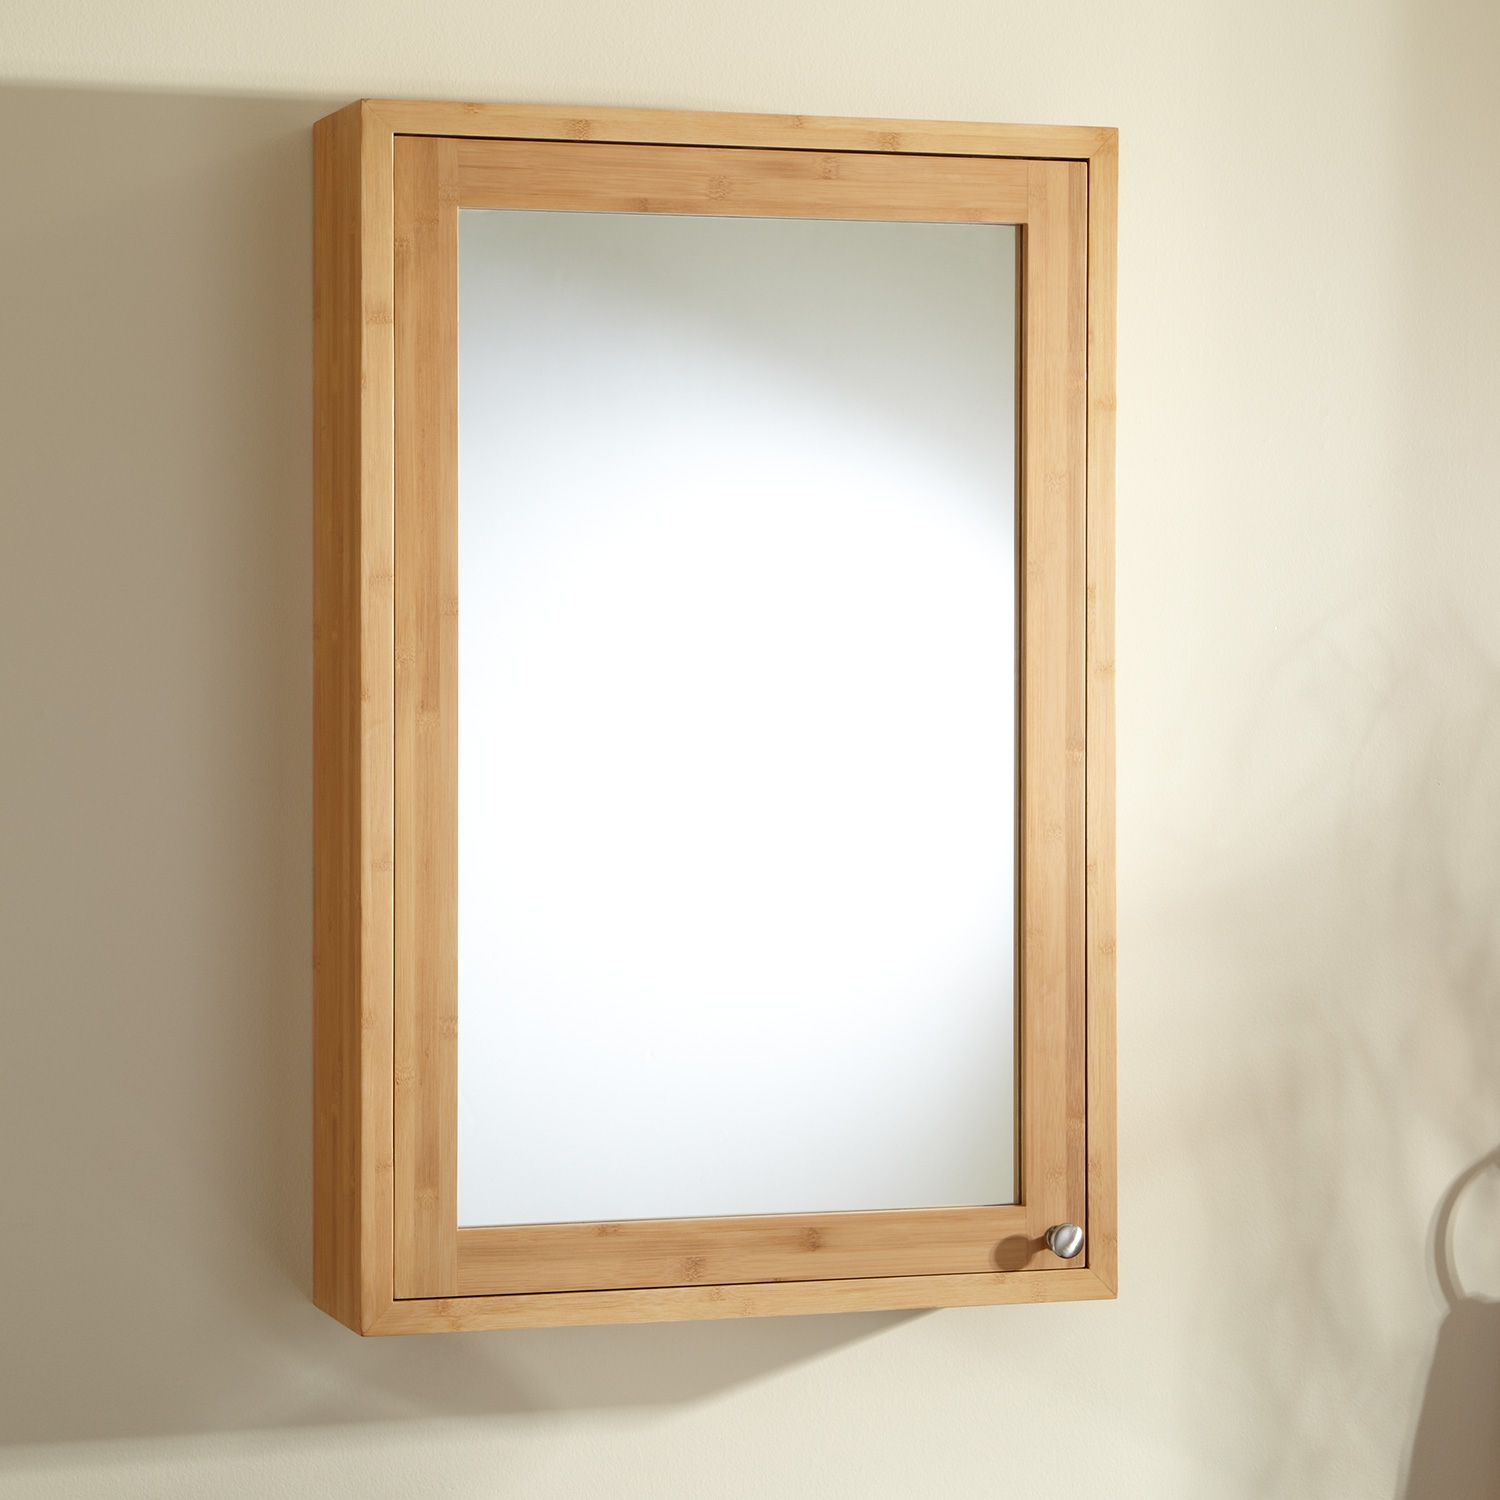 Wood Bathroom Cabinet With Mirror